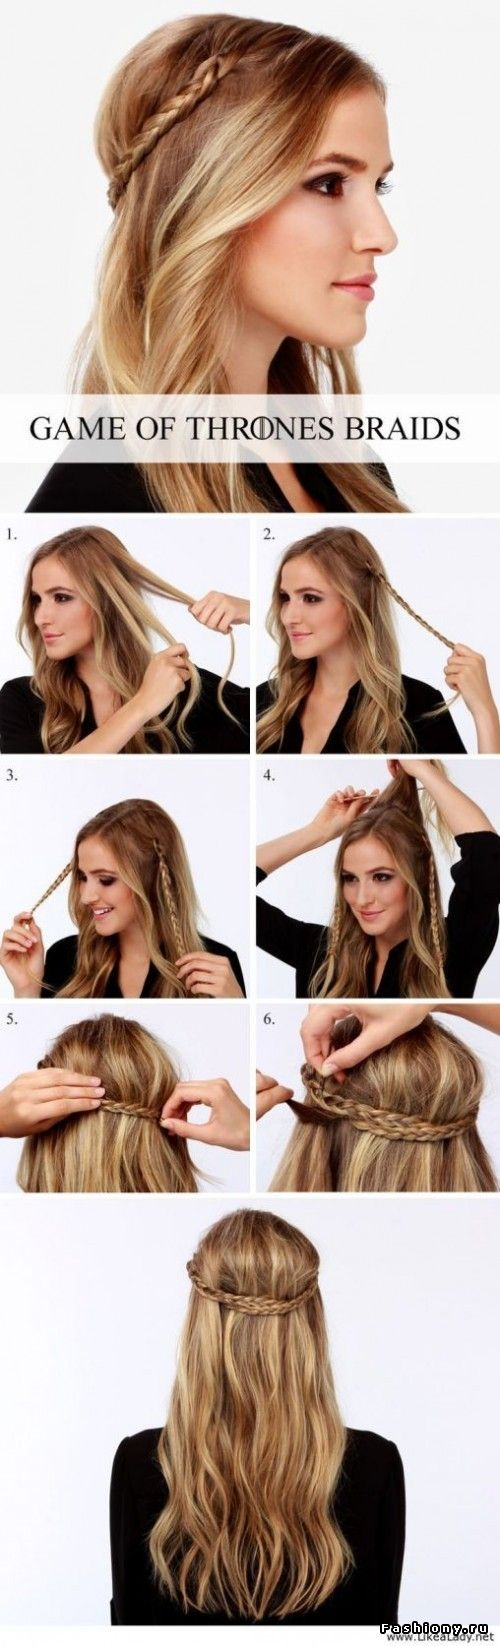 best hair images on pinterest cute hairstyles haircut styles